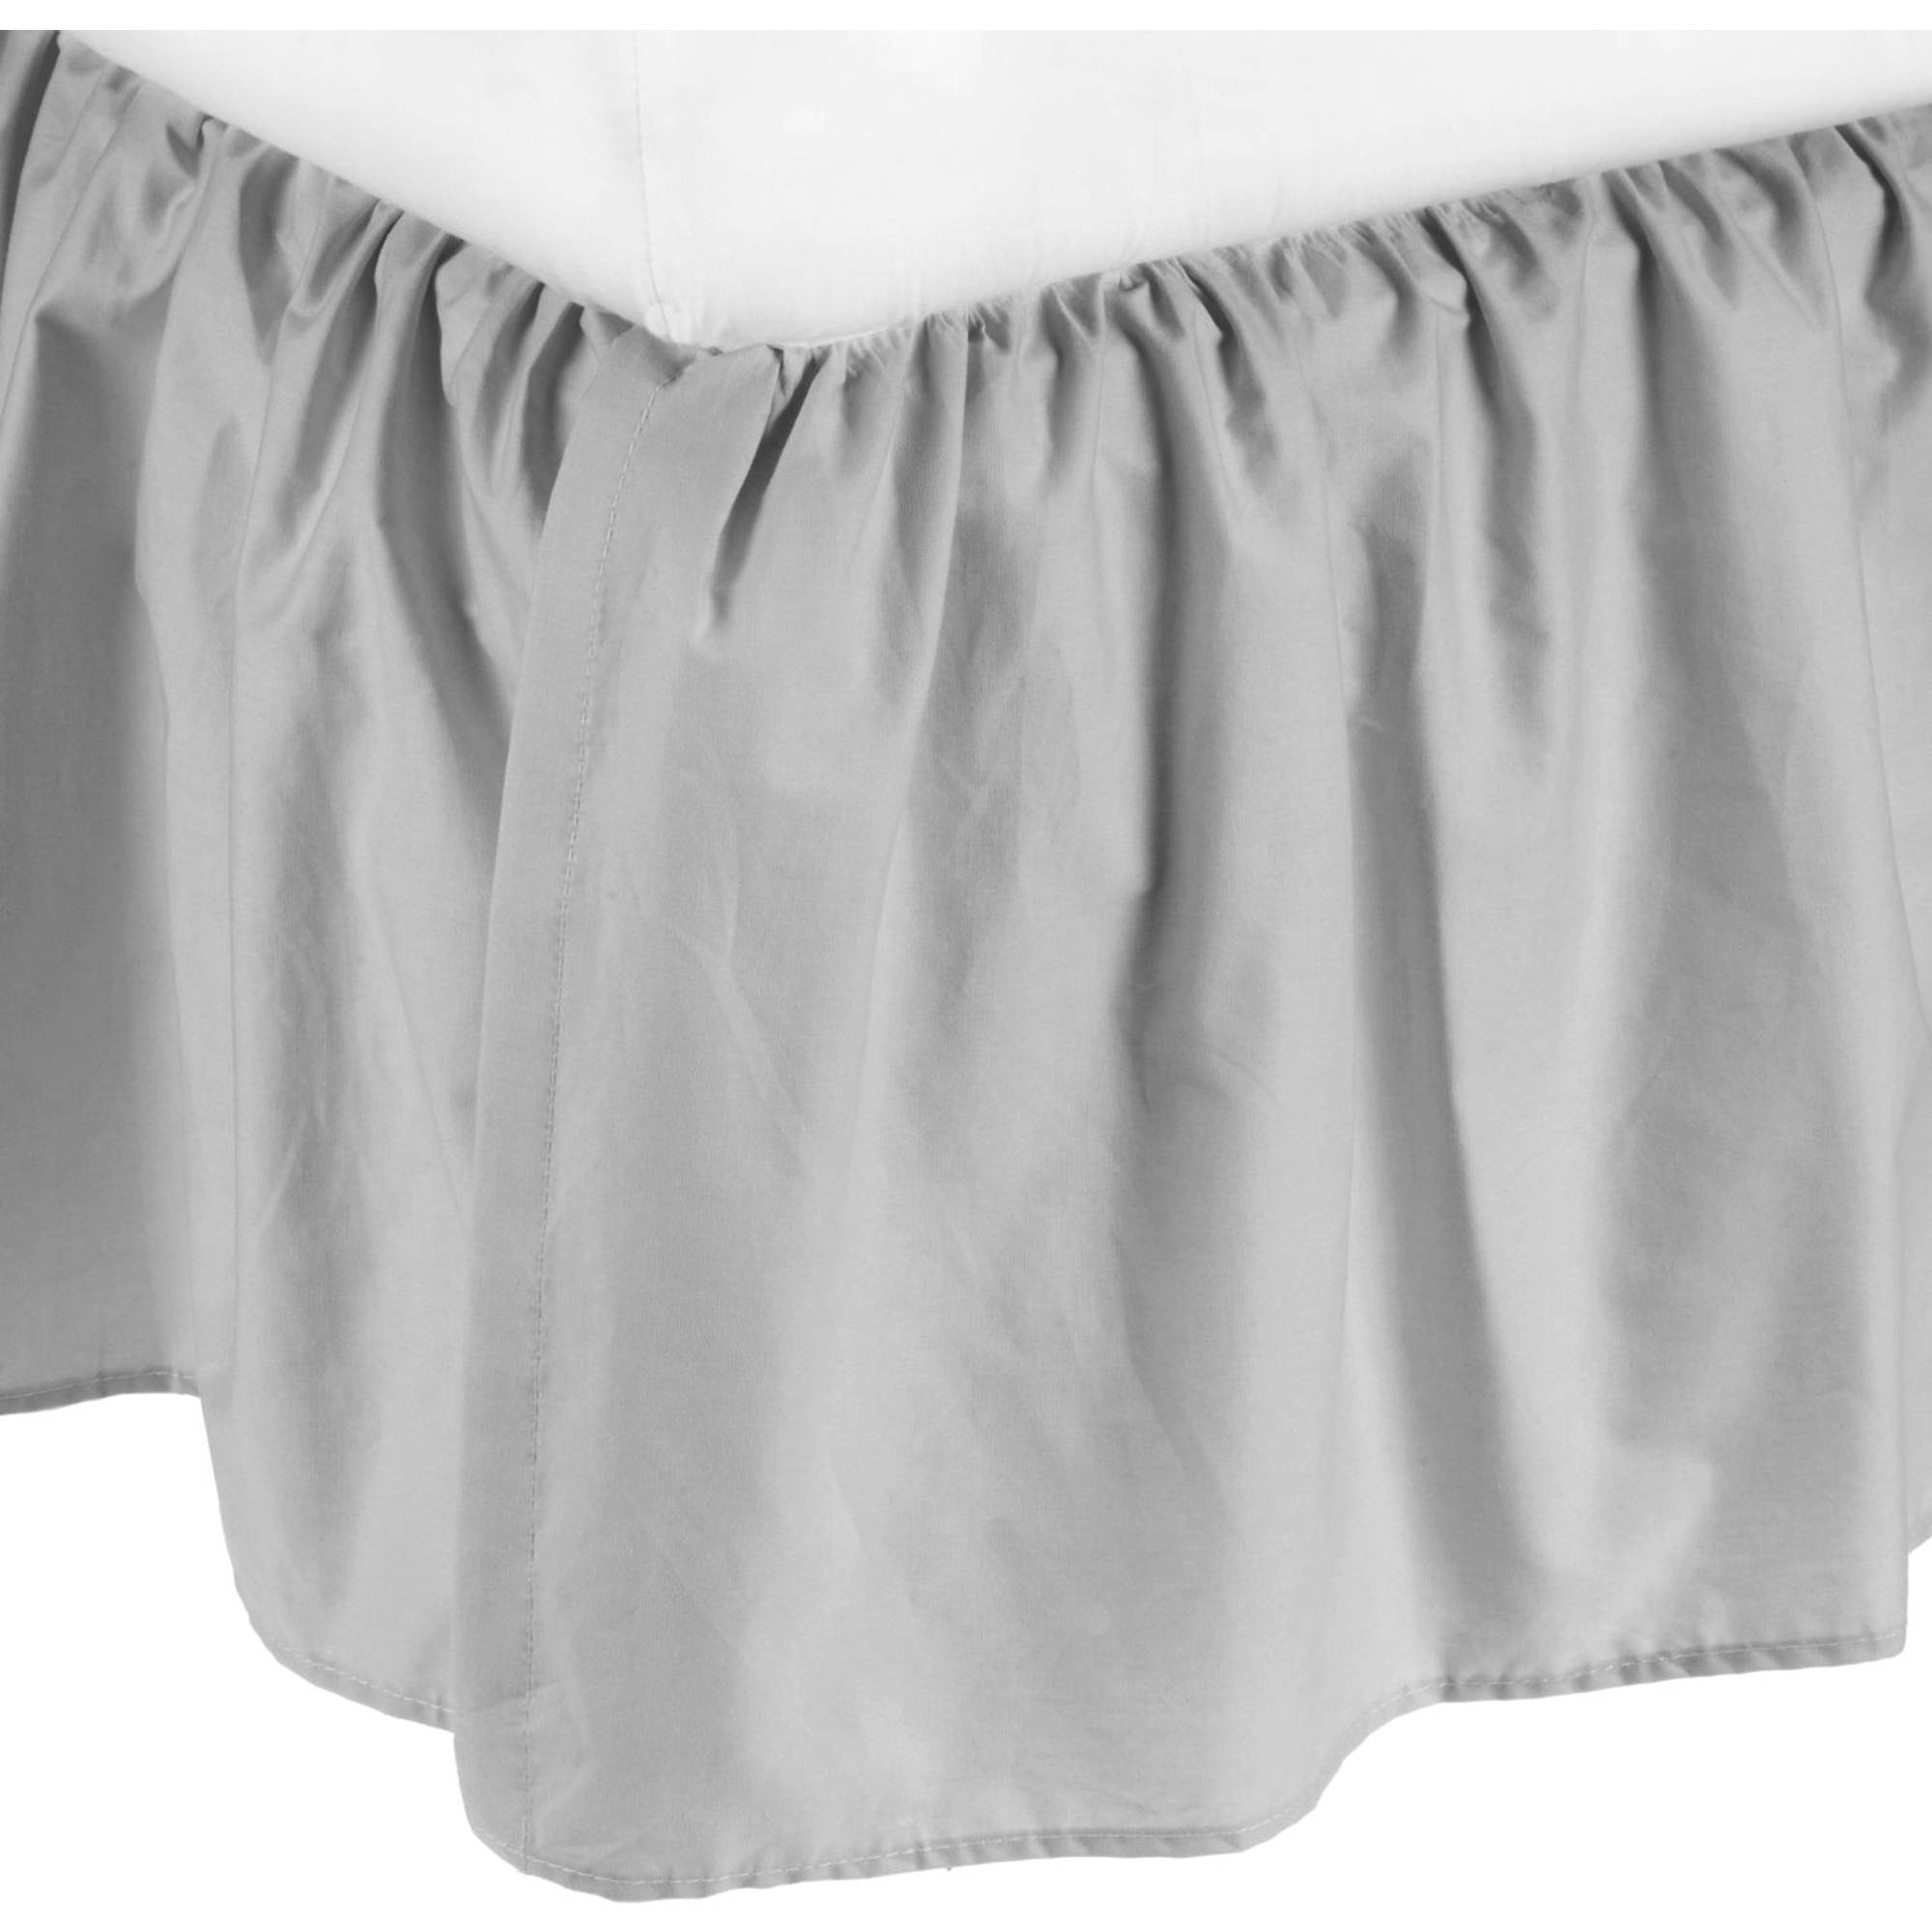 American Baby Company 100 Percent Cotton Percale Mini Crib Bedskirt, Gray by American Baby Company